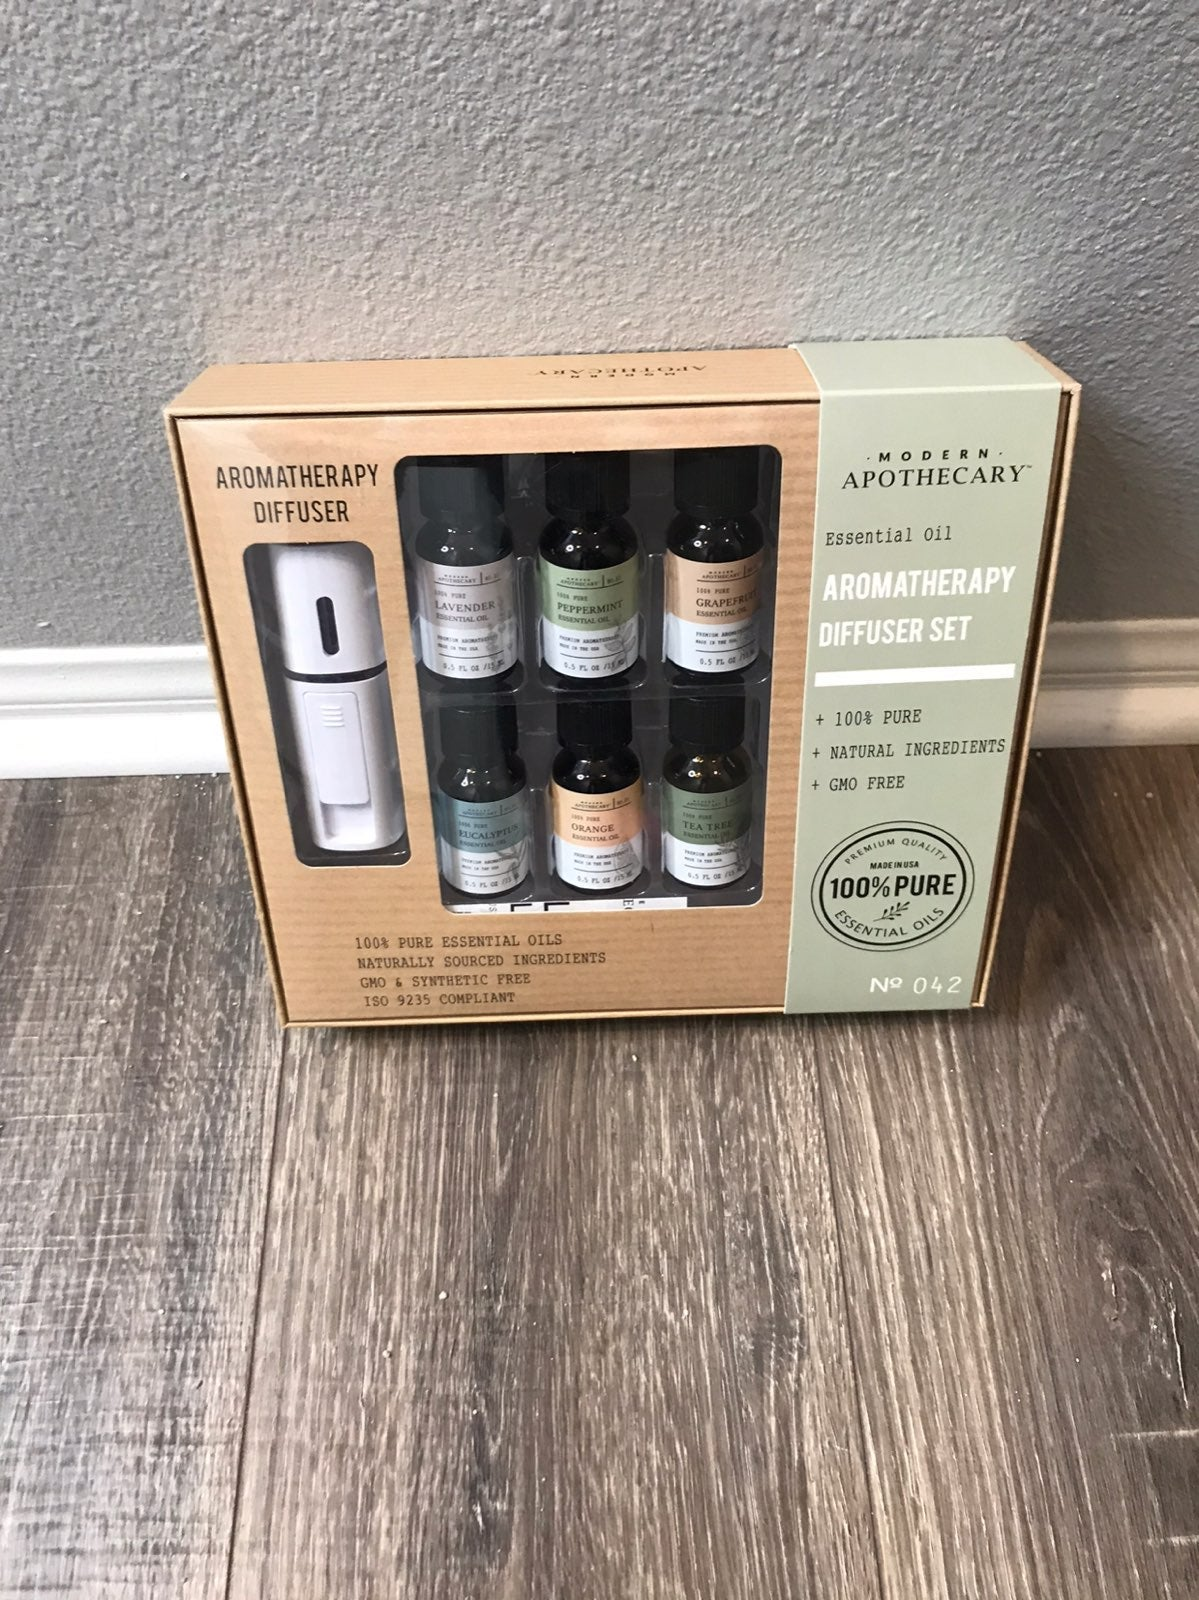 Aromatherapy diffuser essential oils cal